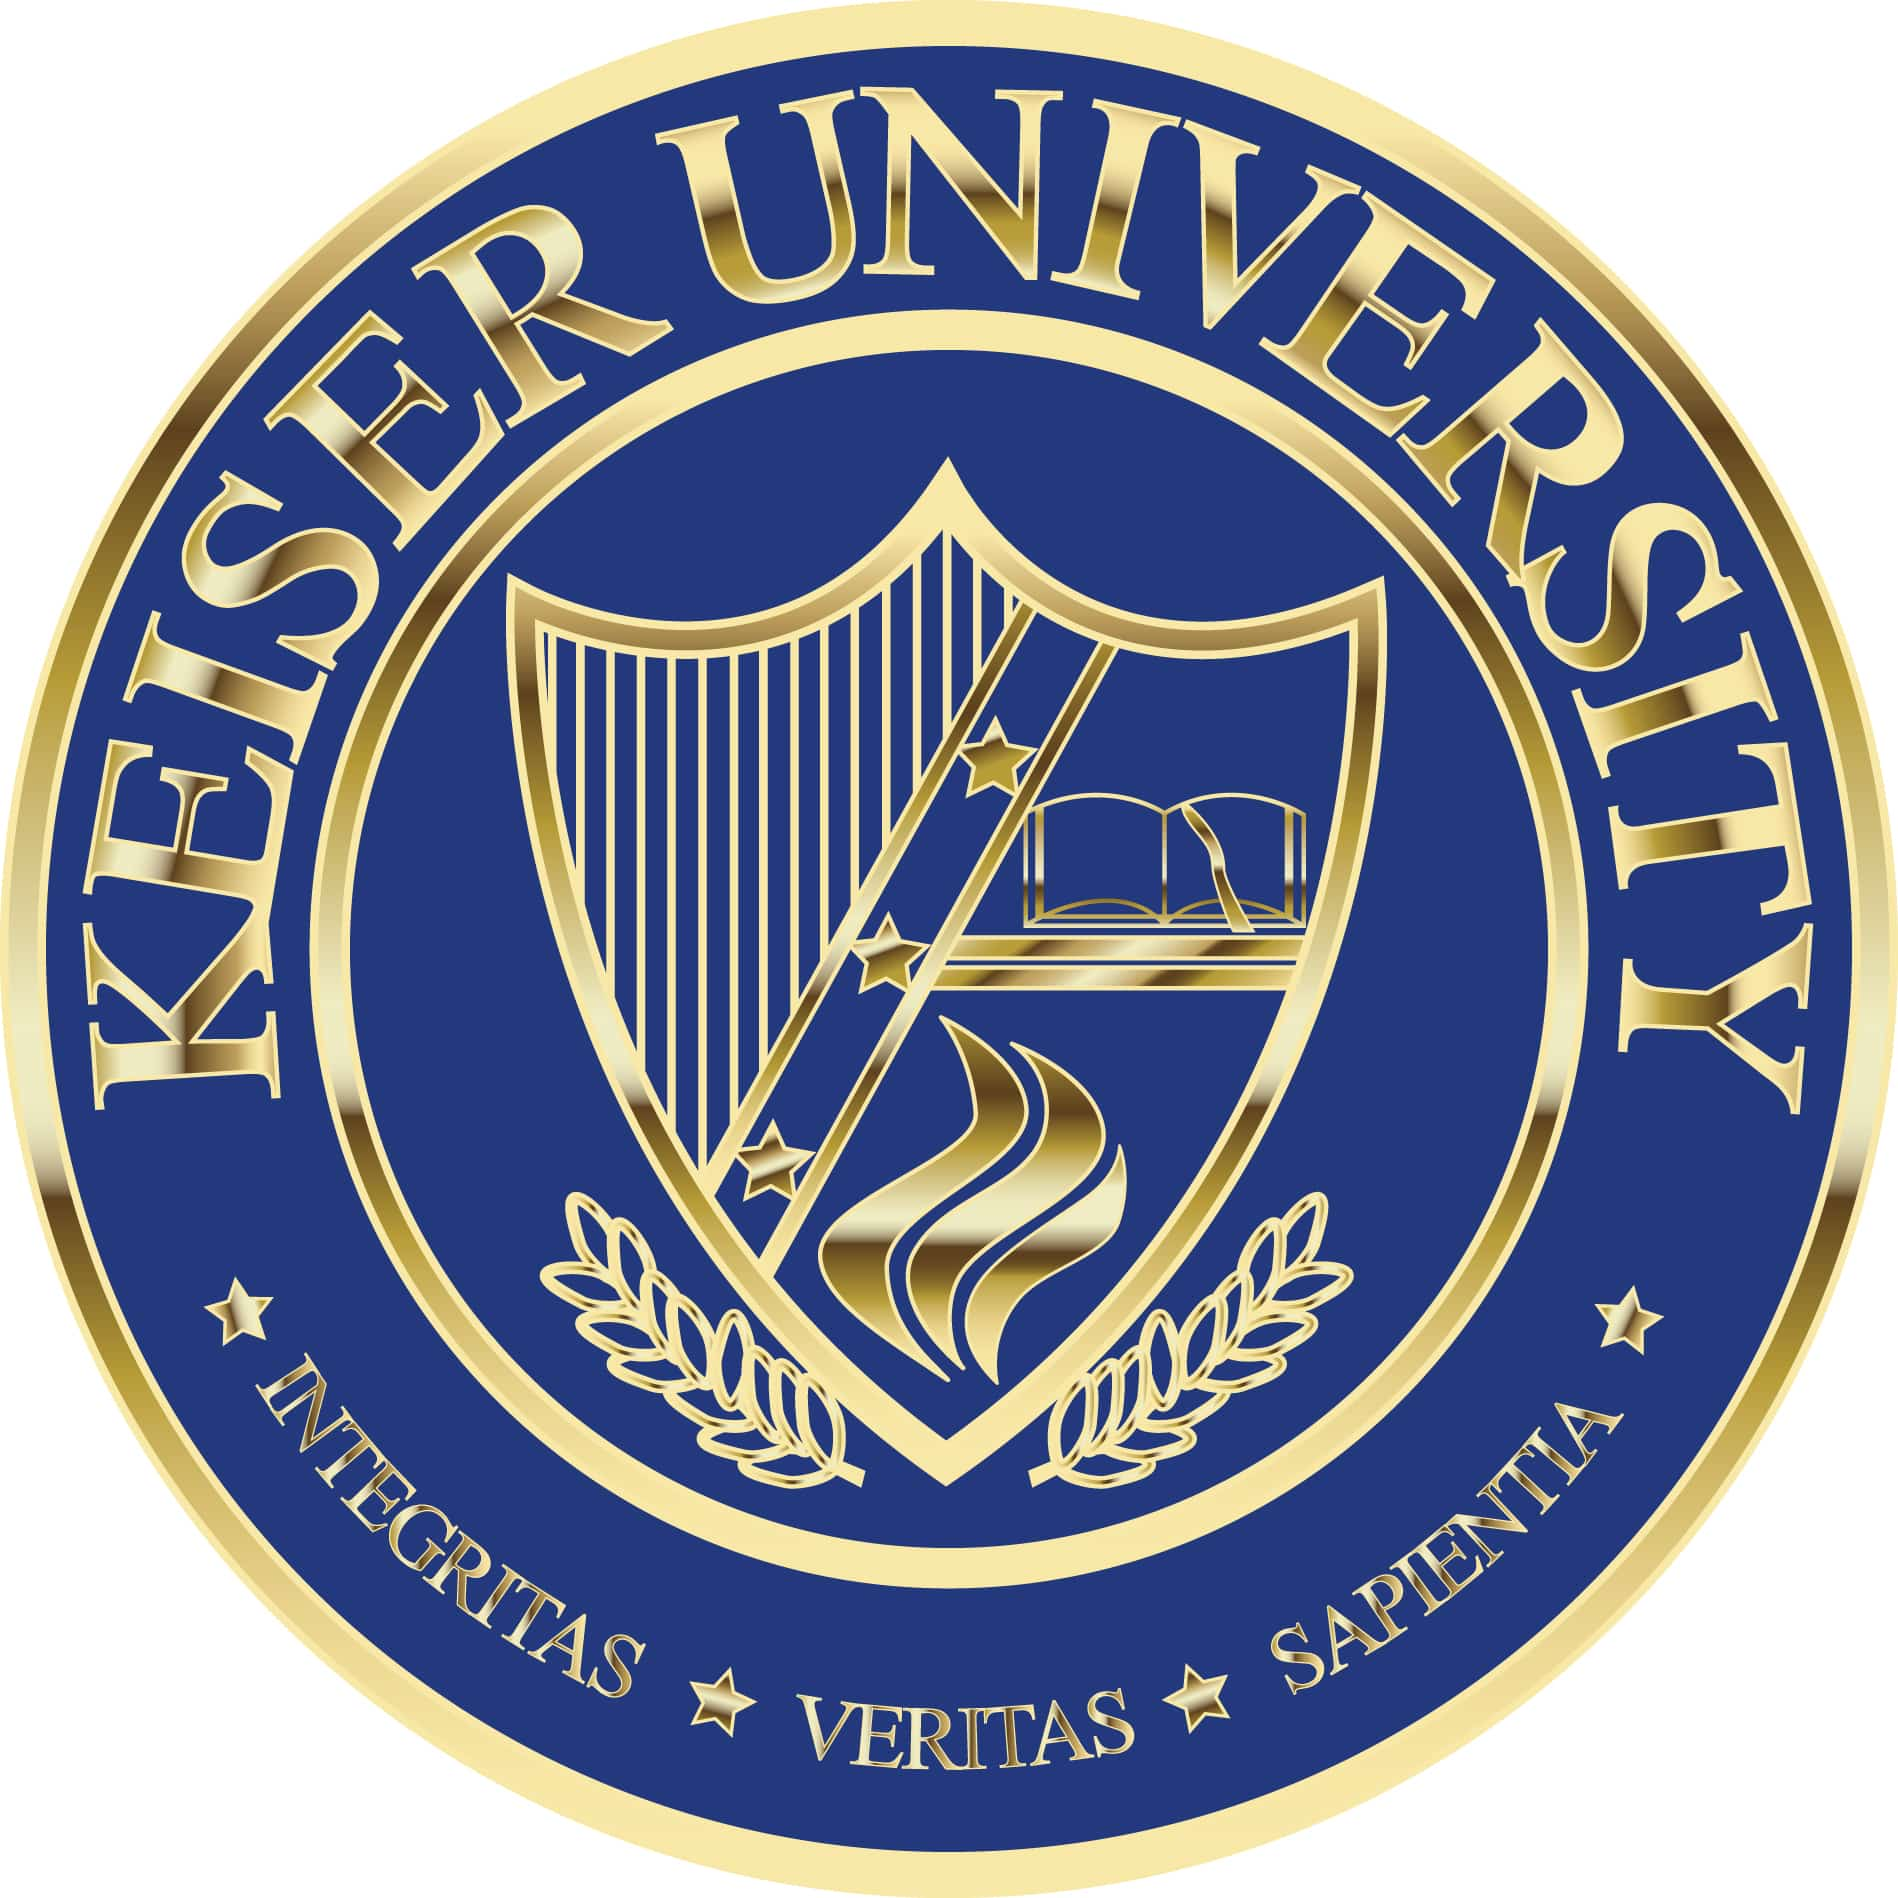 KEISER UNIVERSITY Improves in U.S. News & World Report's Annual Best Colleges Rankings